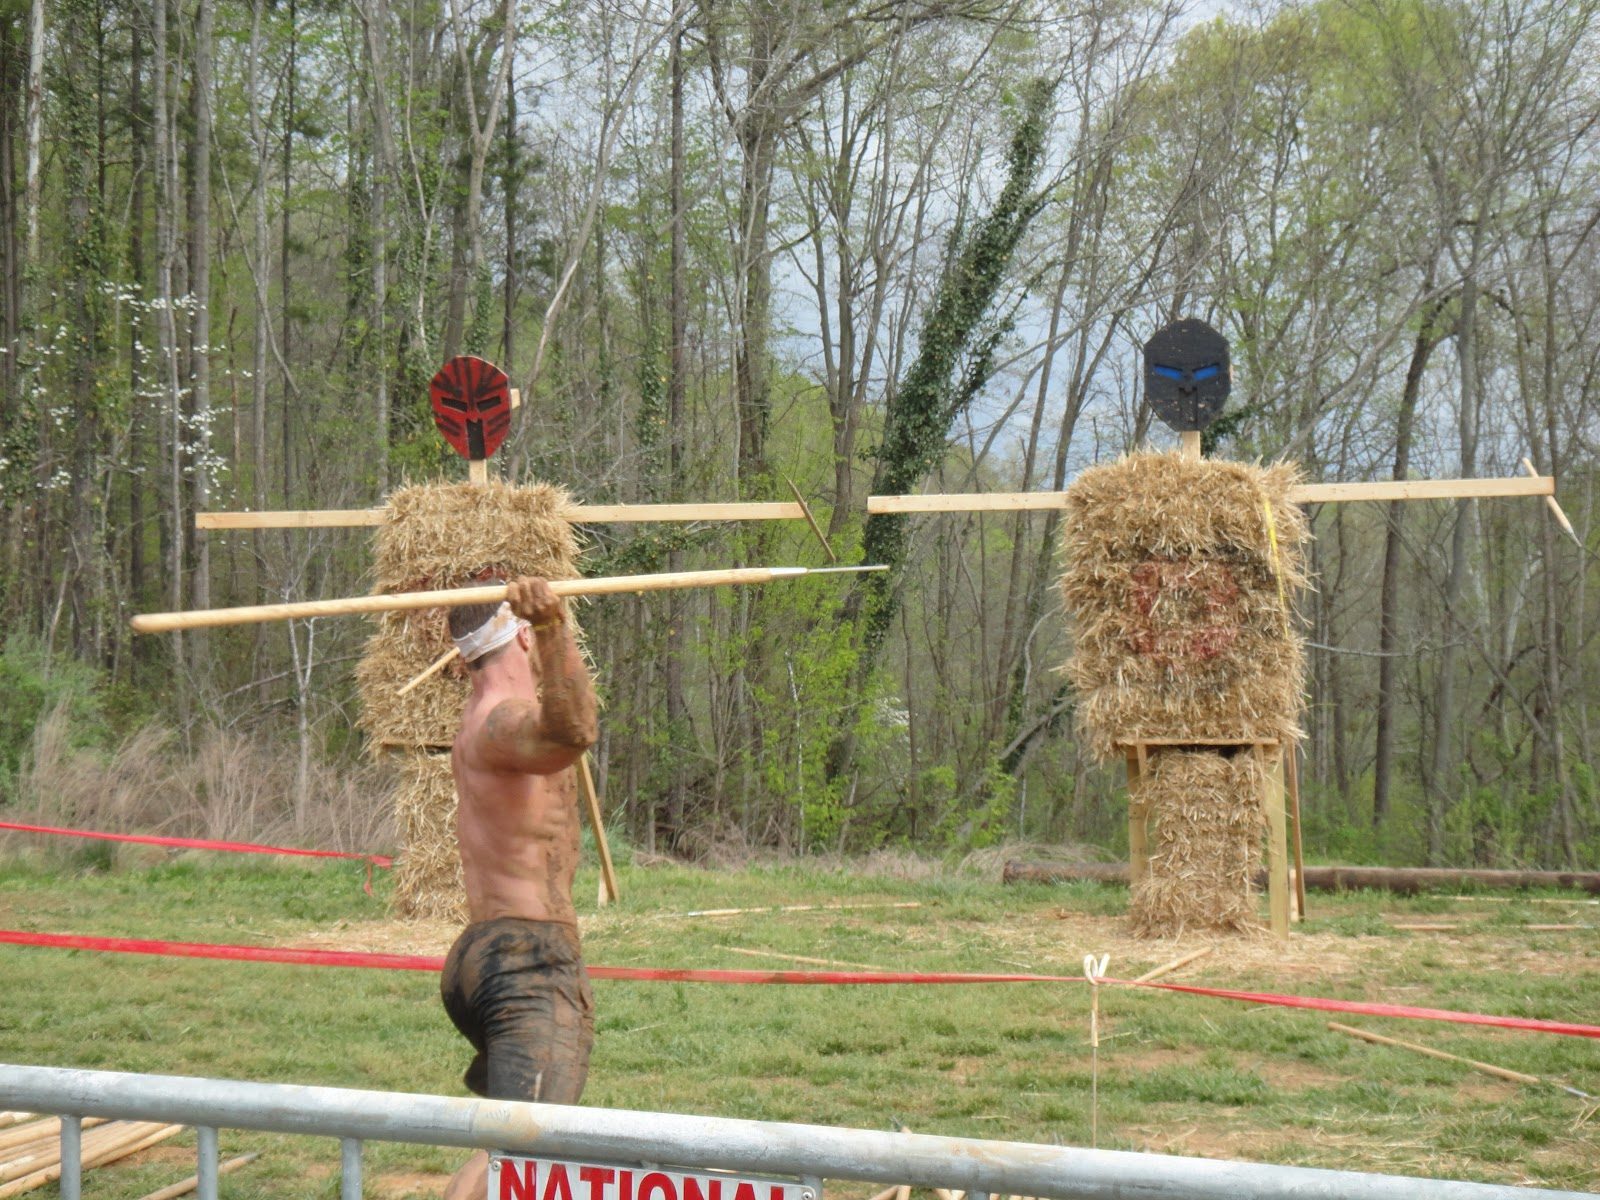 Spartan Obstacle Specialist: Class participants of all levels learn obstacle-specific techniques to dominate their next Spartan Race from our Level 2 coaches. Fitness professional? Pair the class with the online Spartan SGX workshop at special package price. Classes are held at Spartan Race venues the day before select race weekends, and are limited to 20 participants.